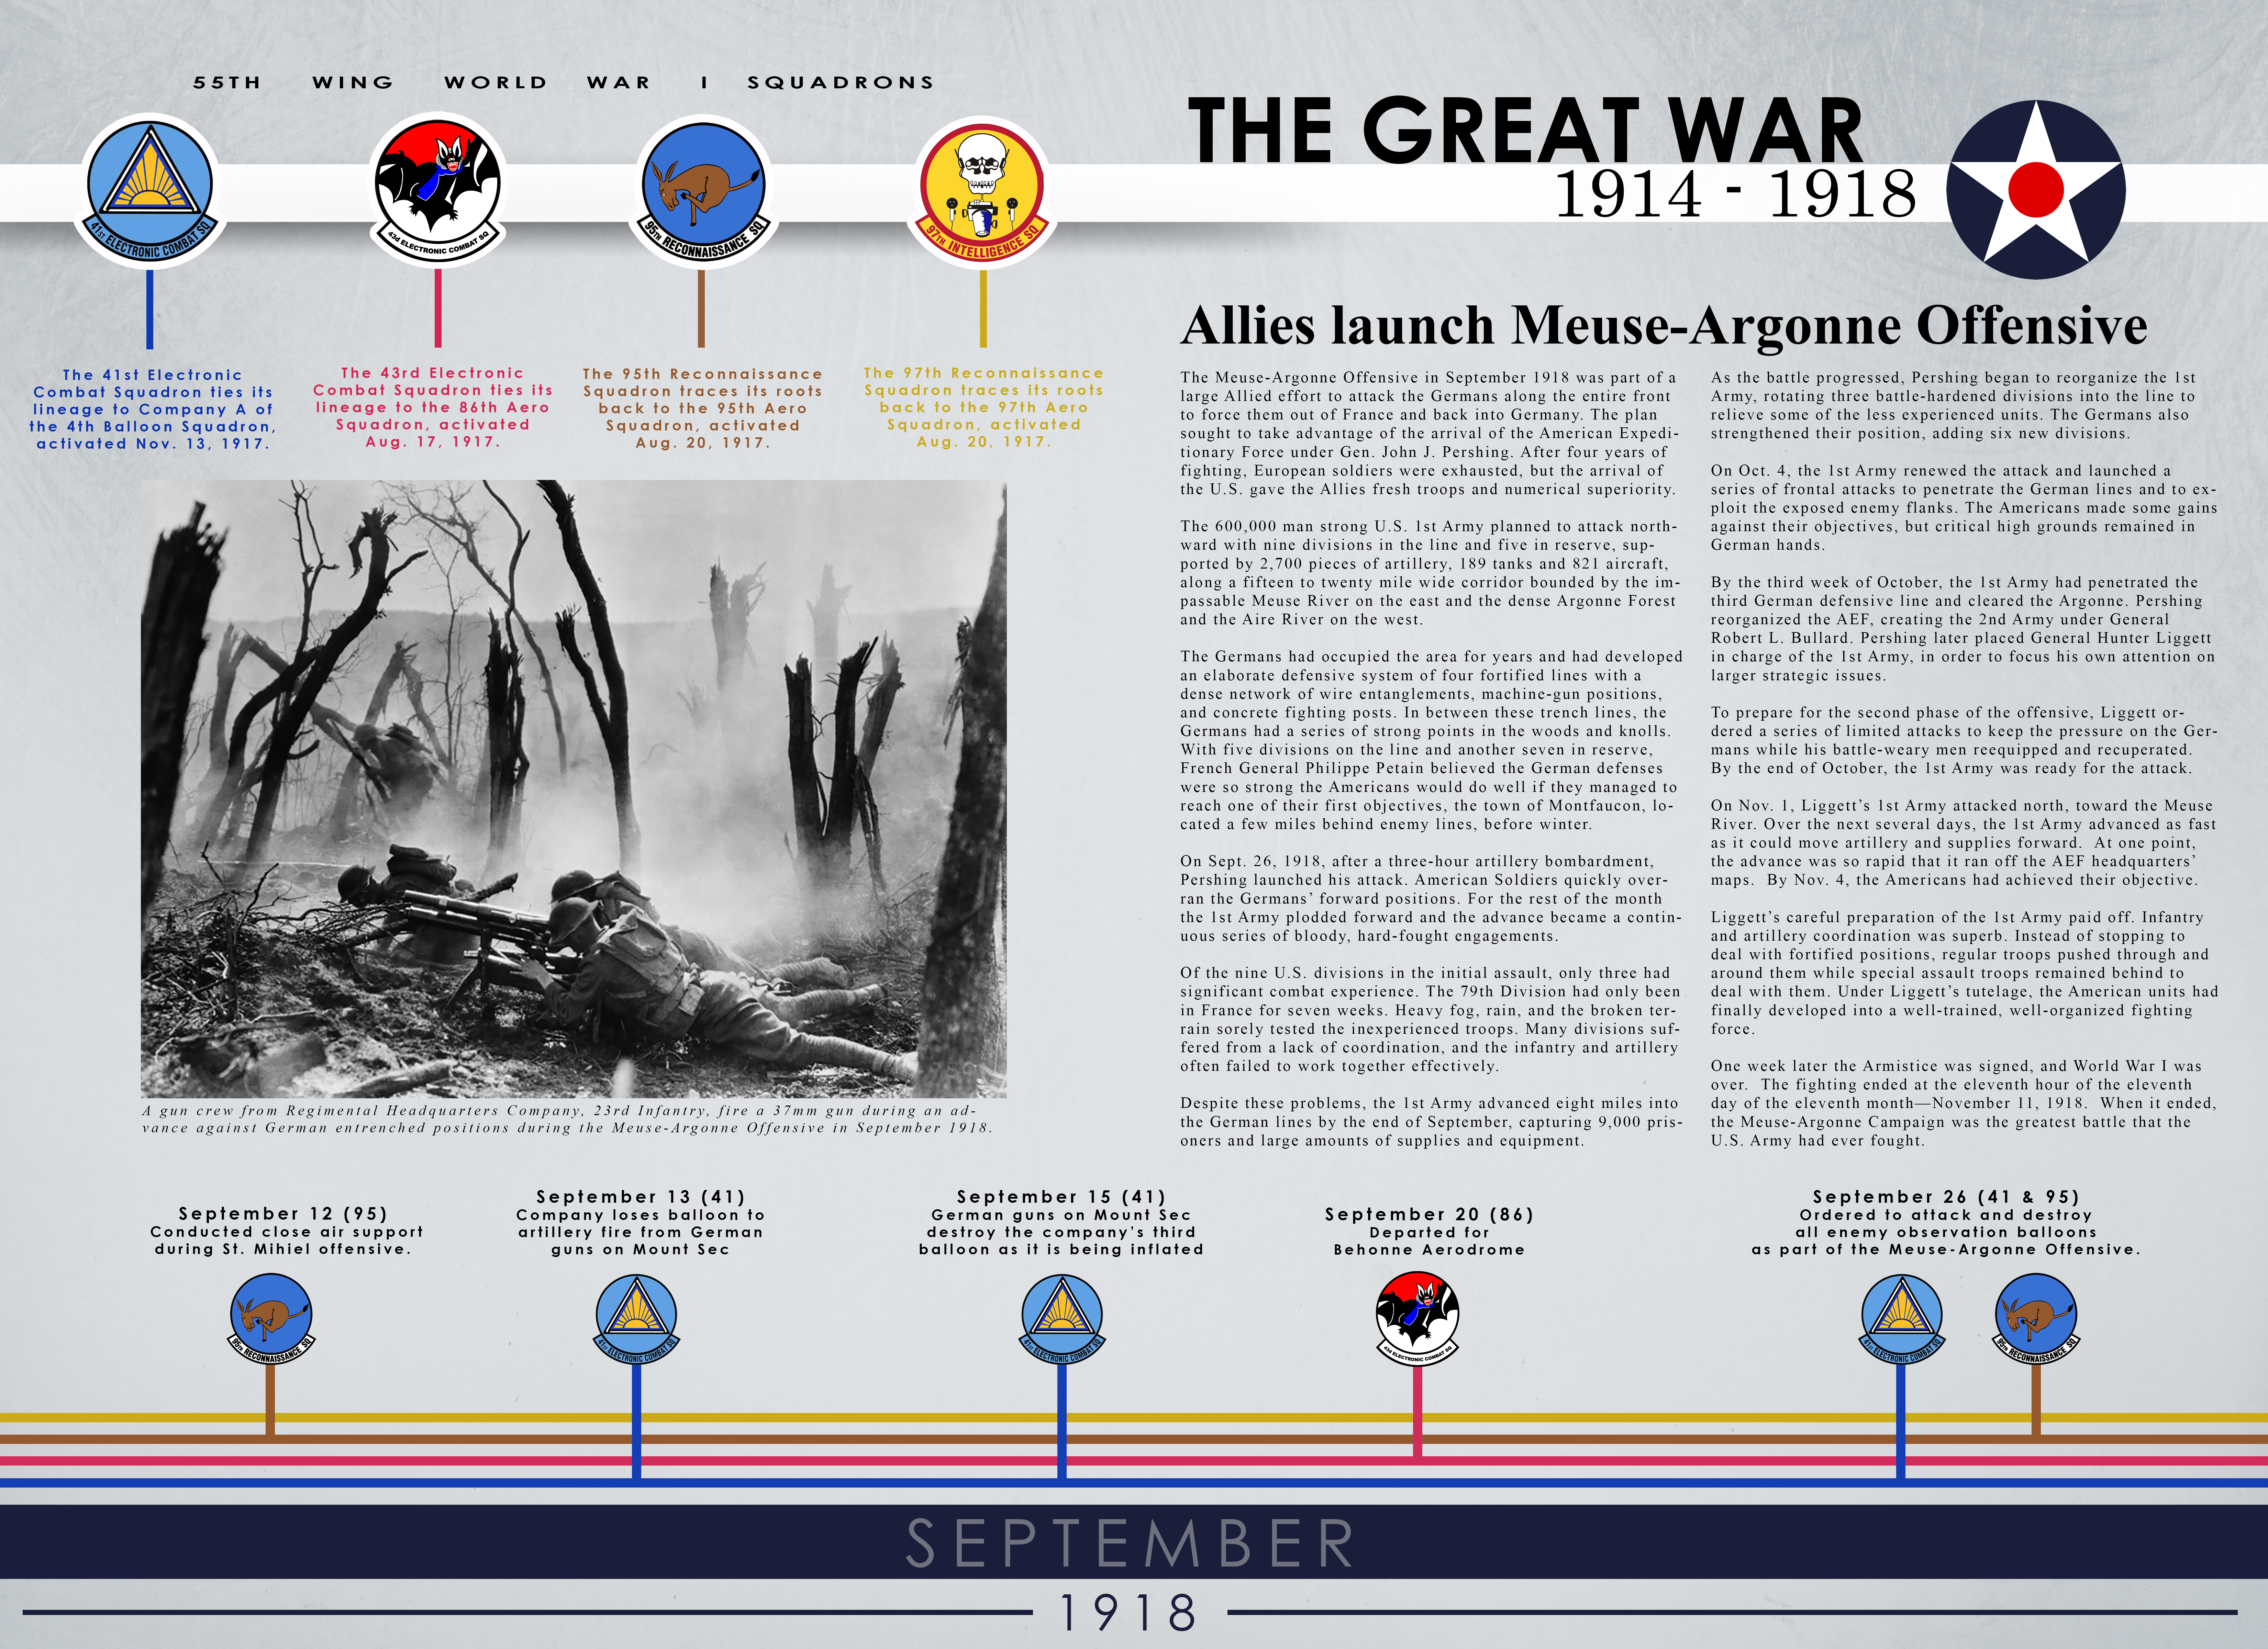 The Great War - September timeline